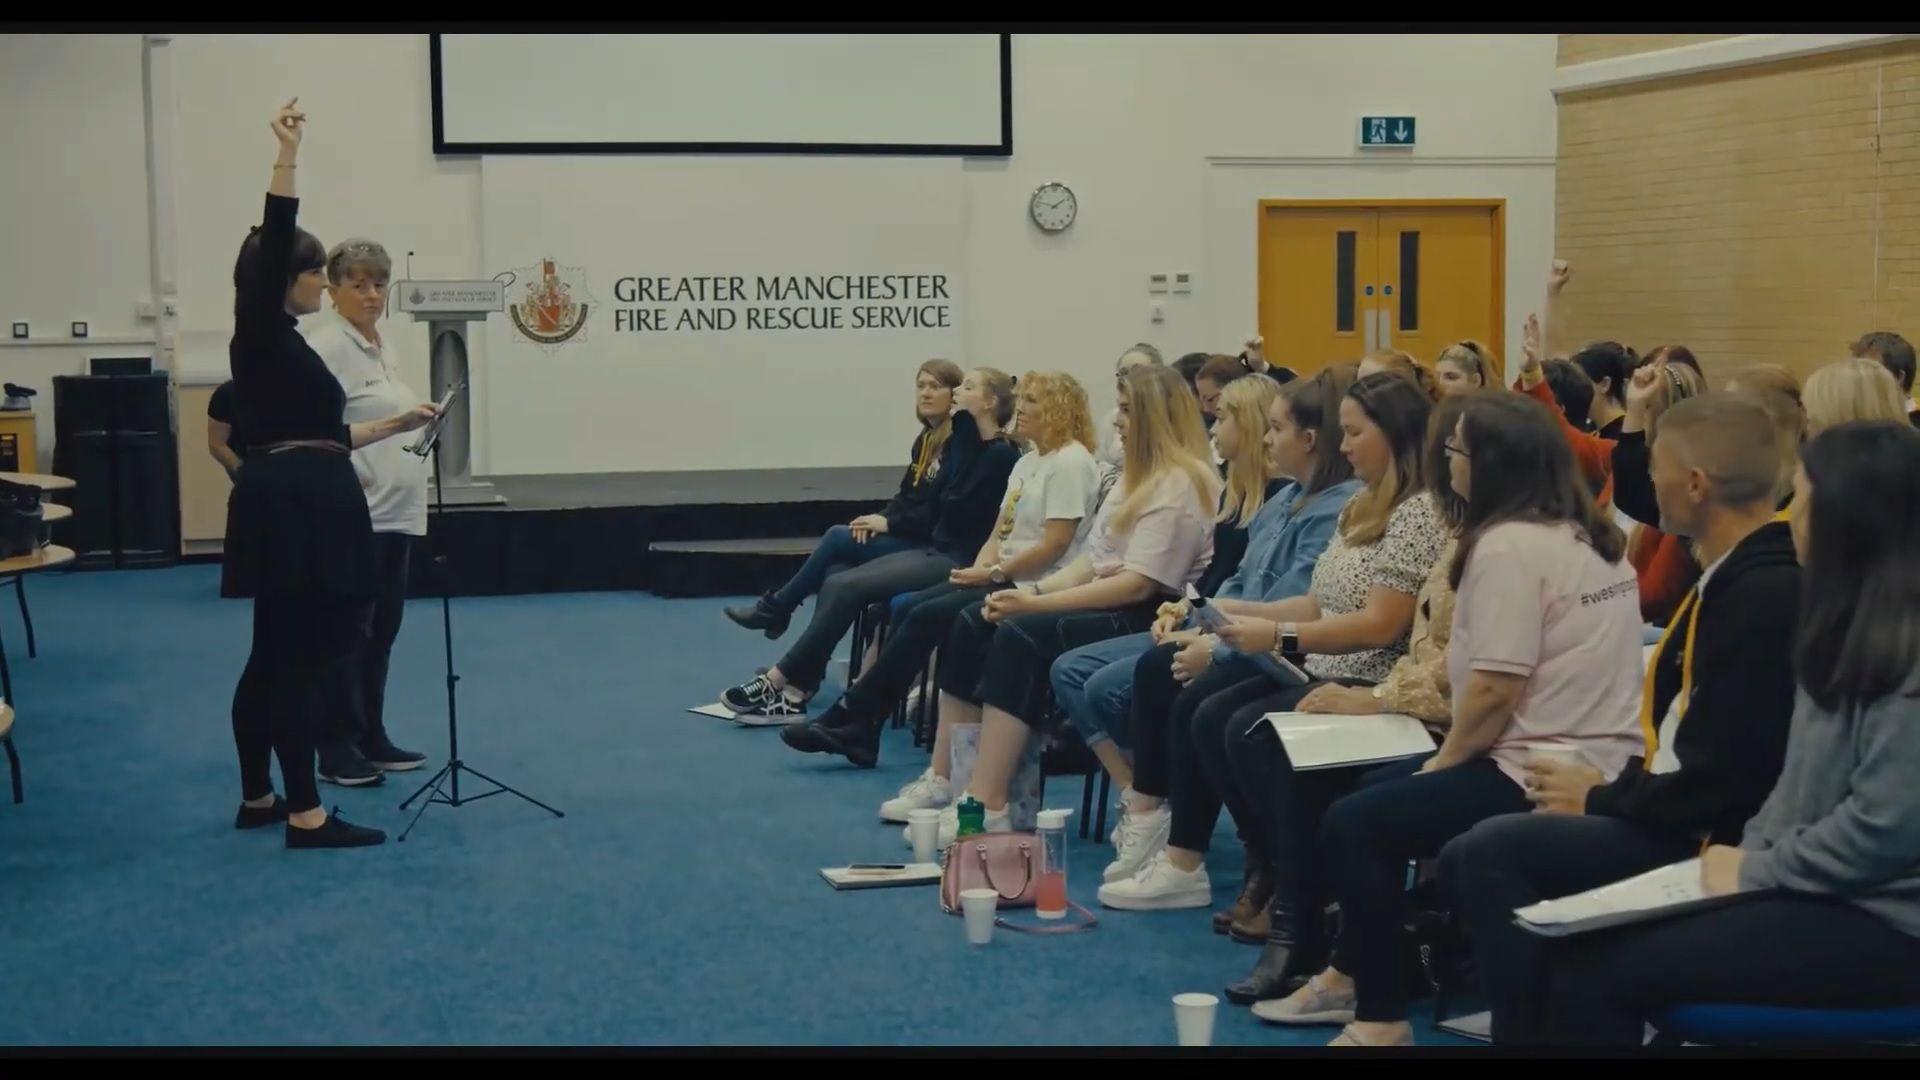 A choir practicing - a scene from A Manchester Story